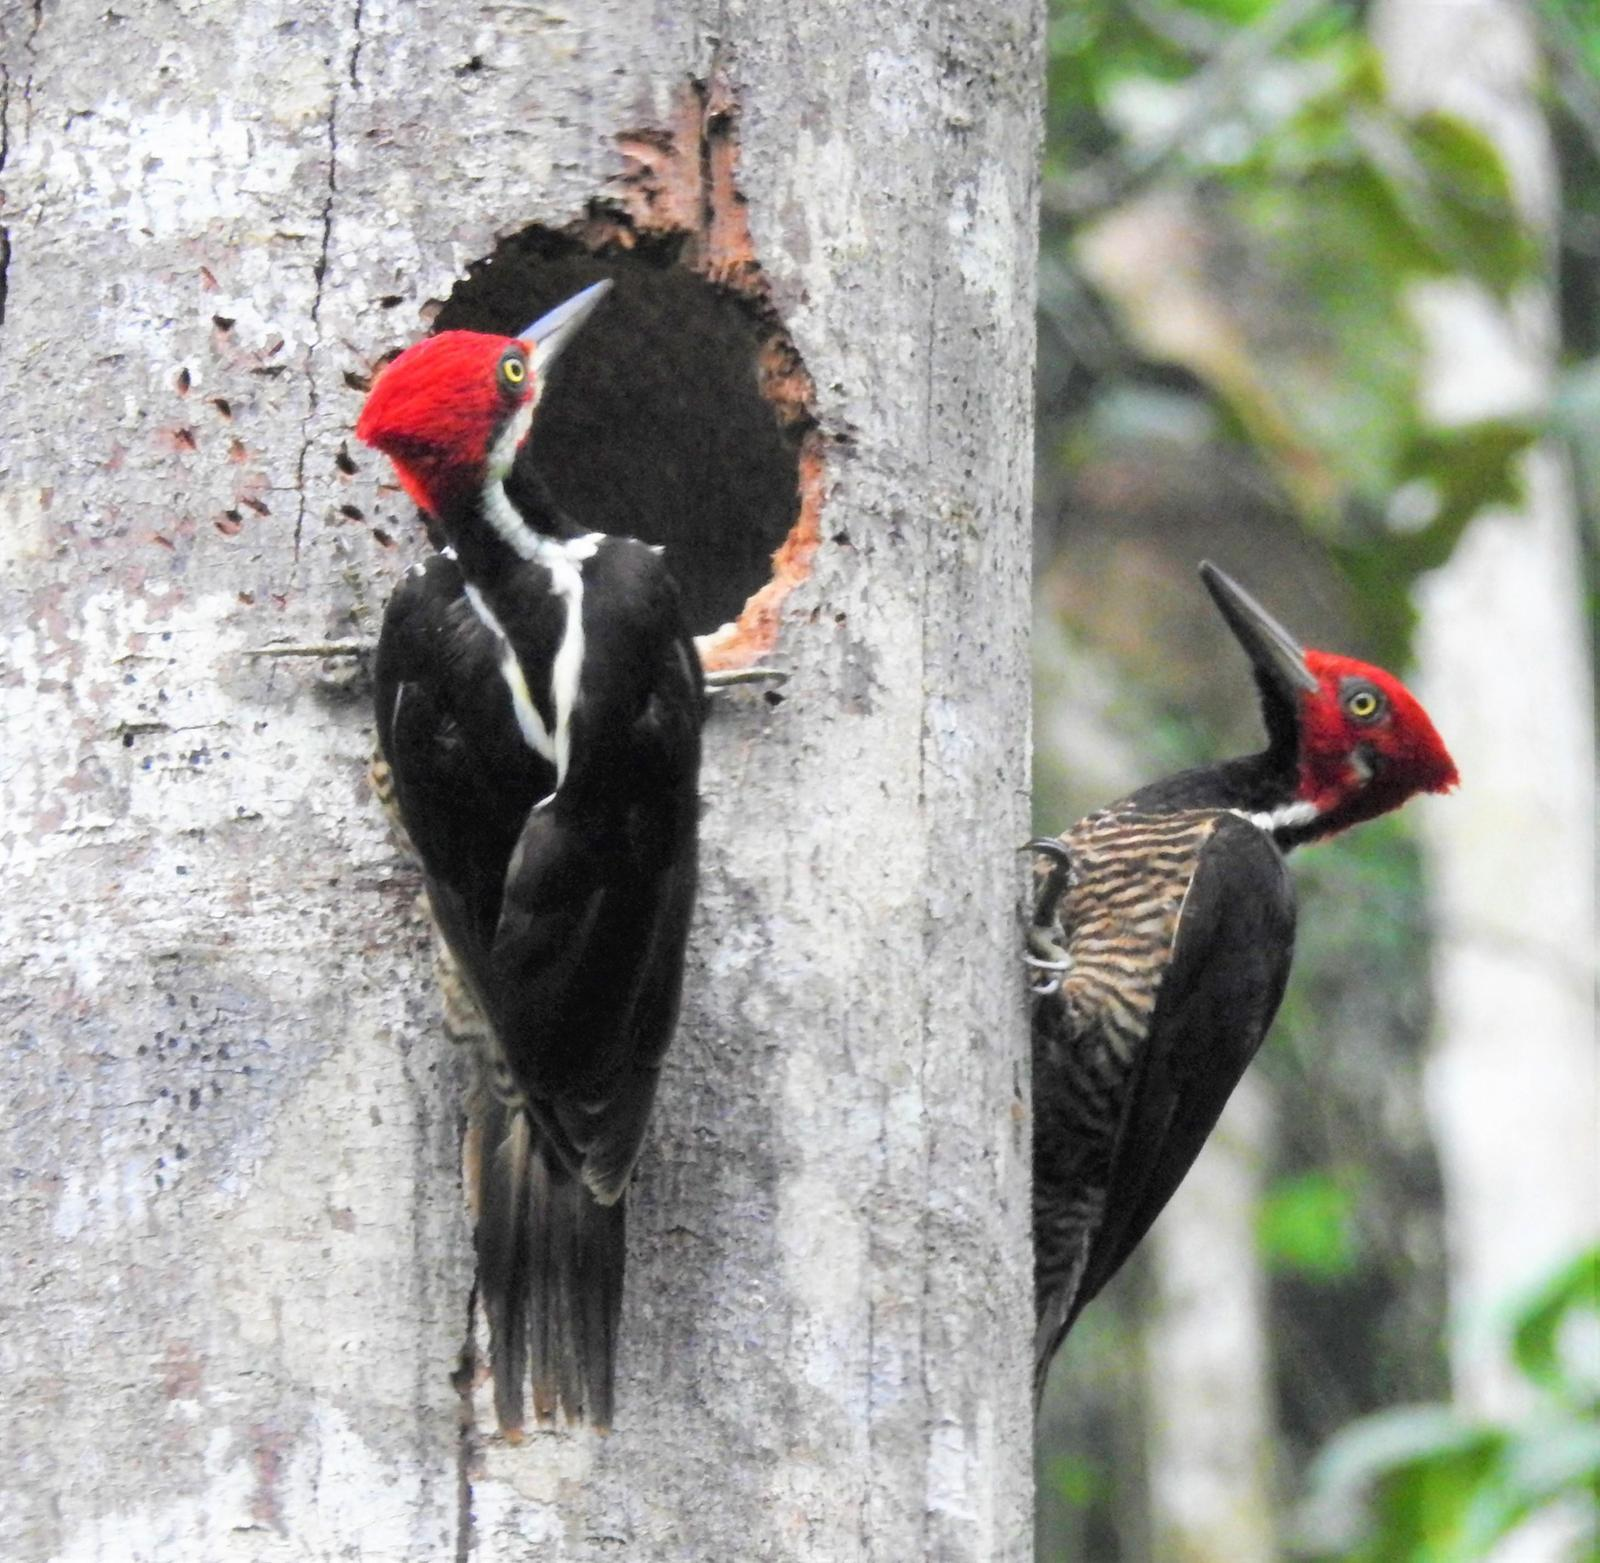 Guayaquil Woodpecker Photo by John Licharson